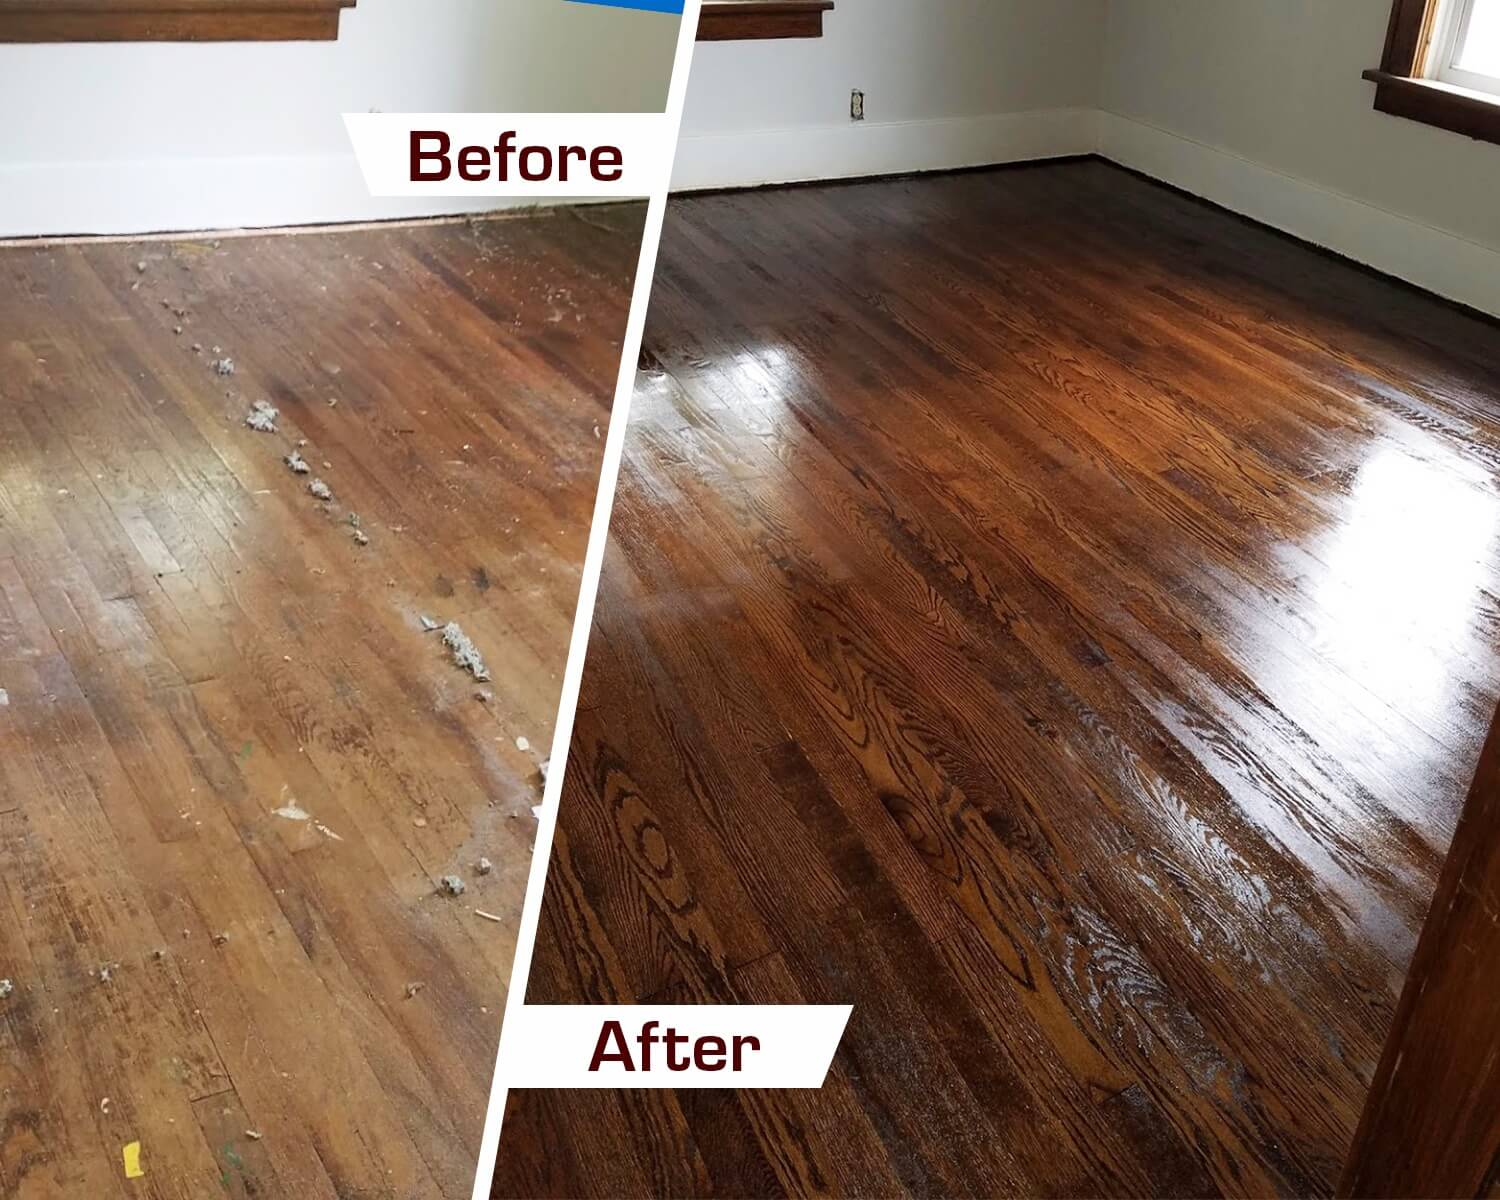 before and after hardwood floor refinishing in trenton, nj